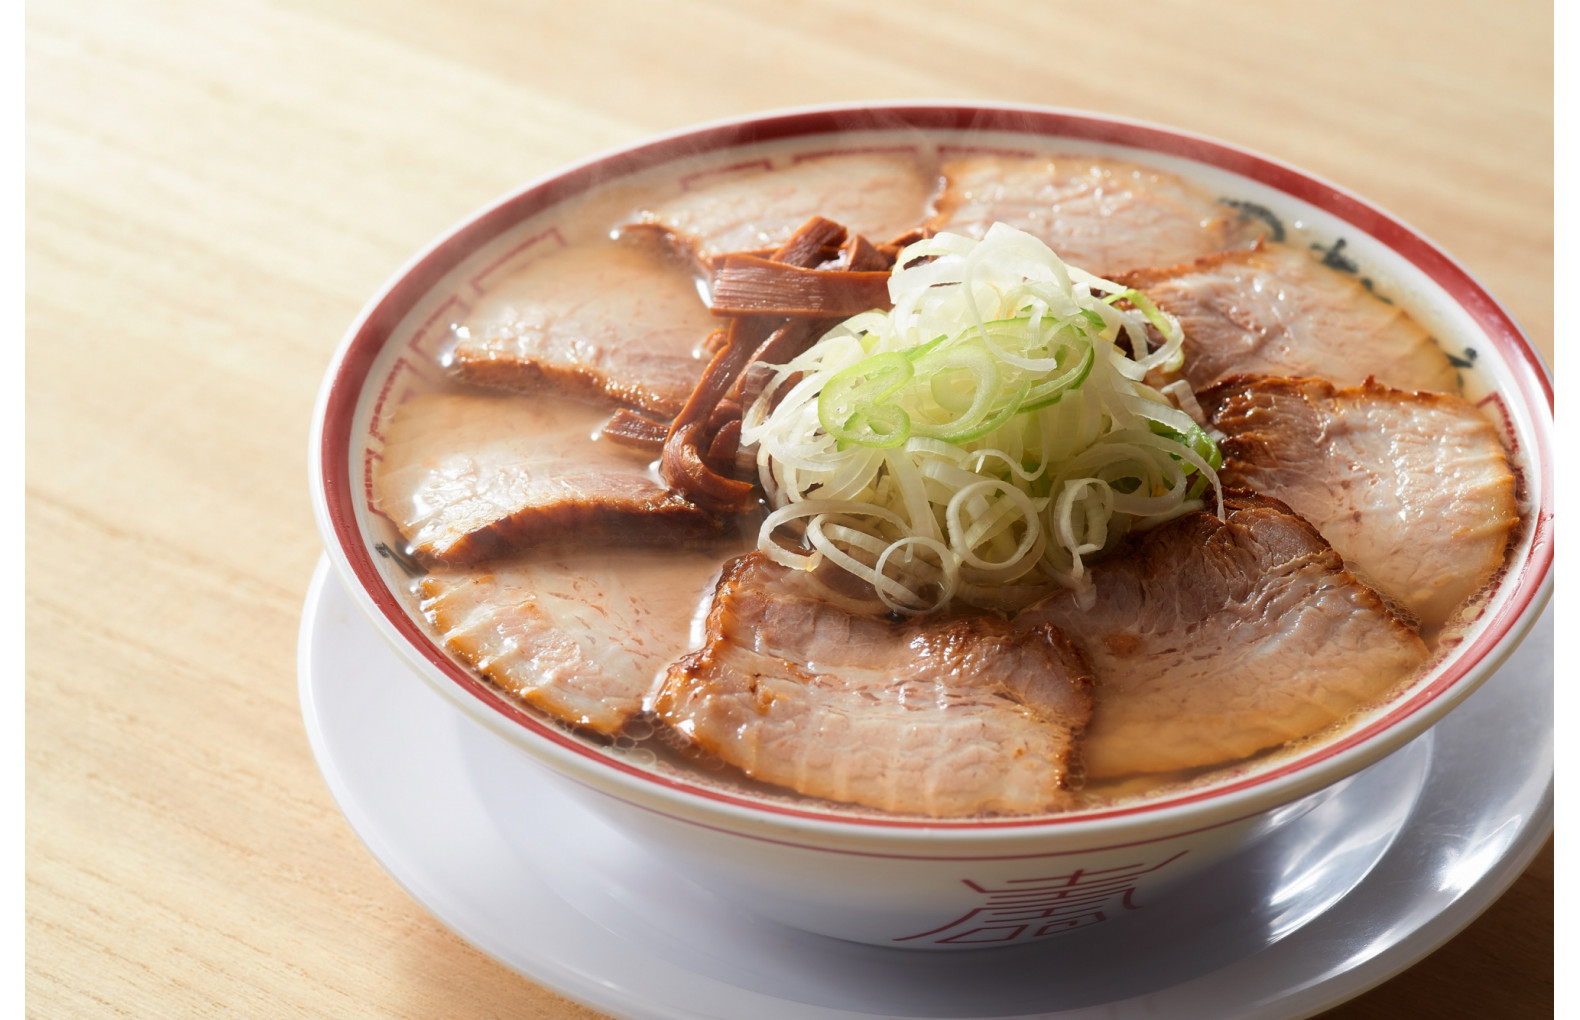 Tanaka noodle shop specialized in Chinese noodles